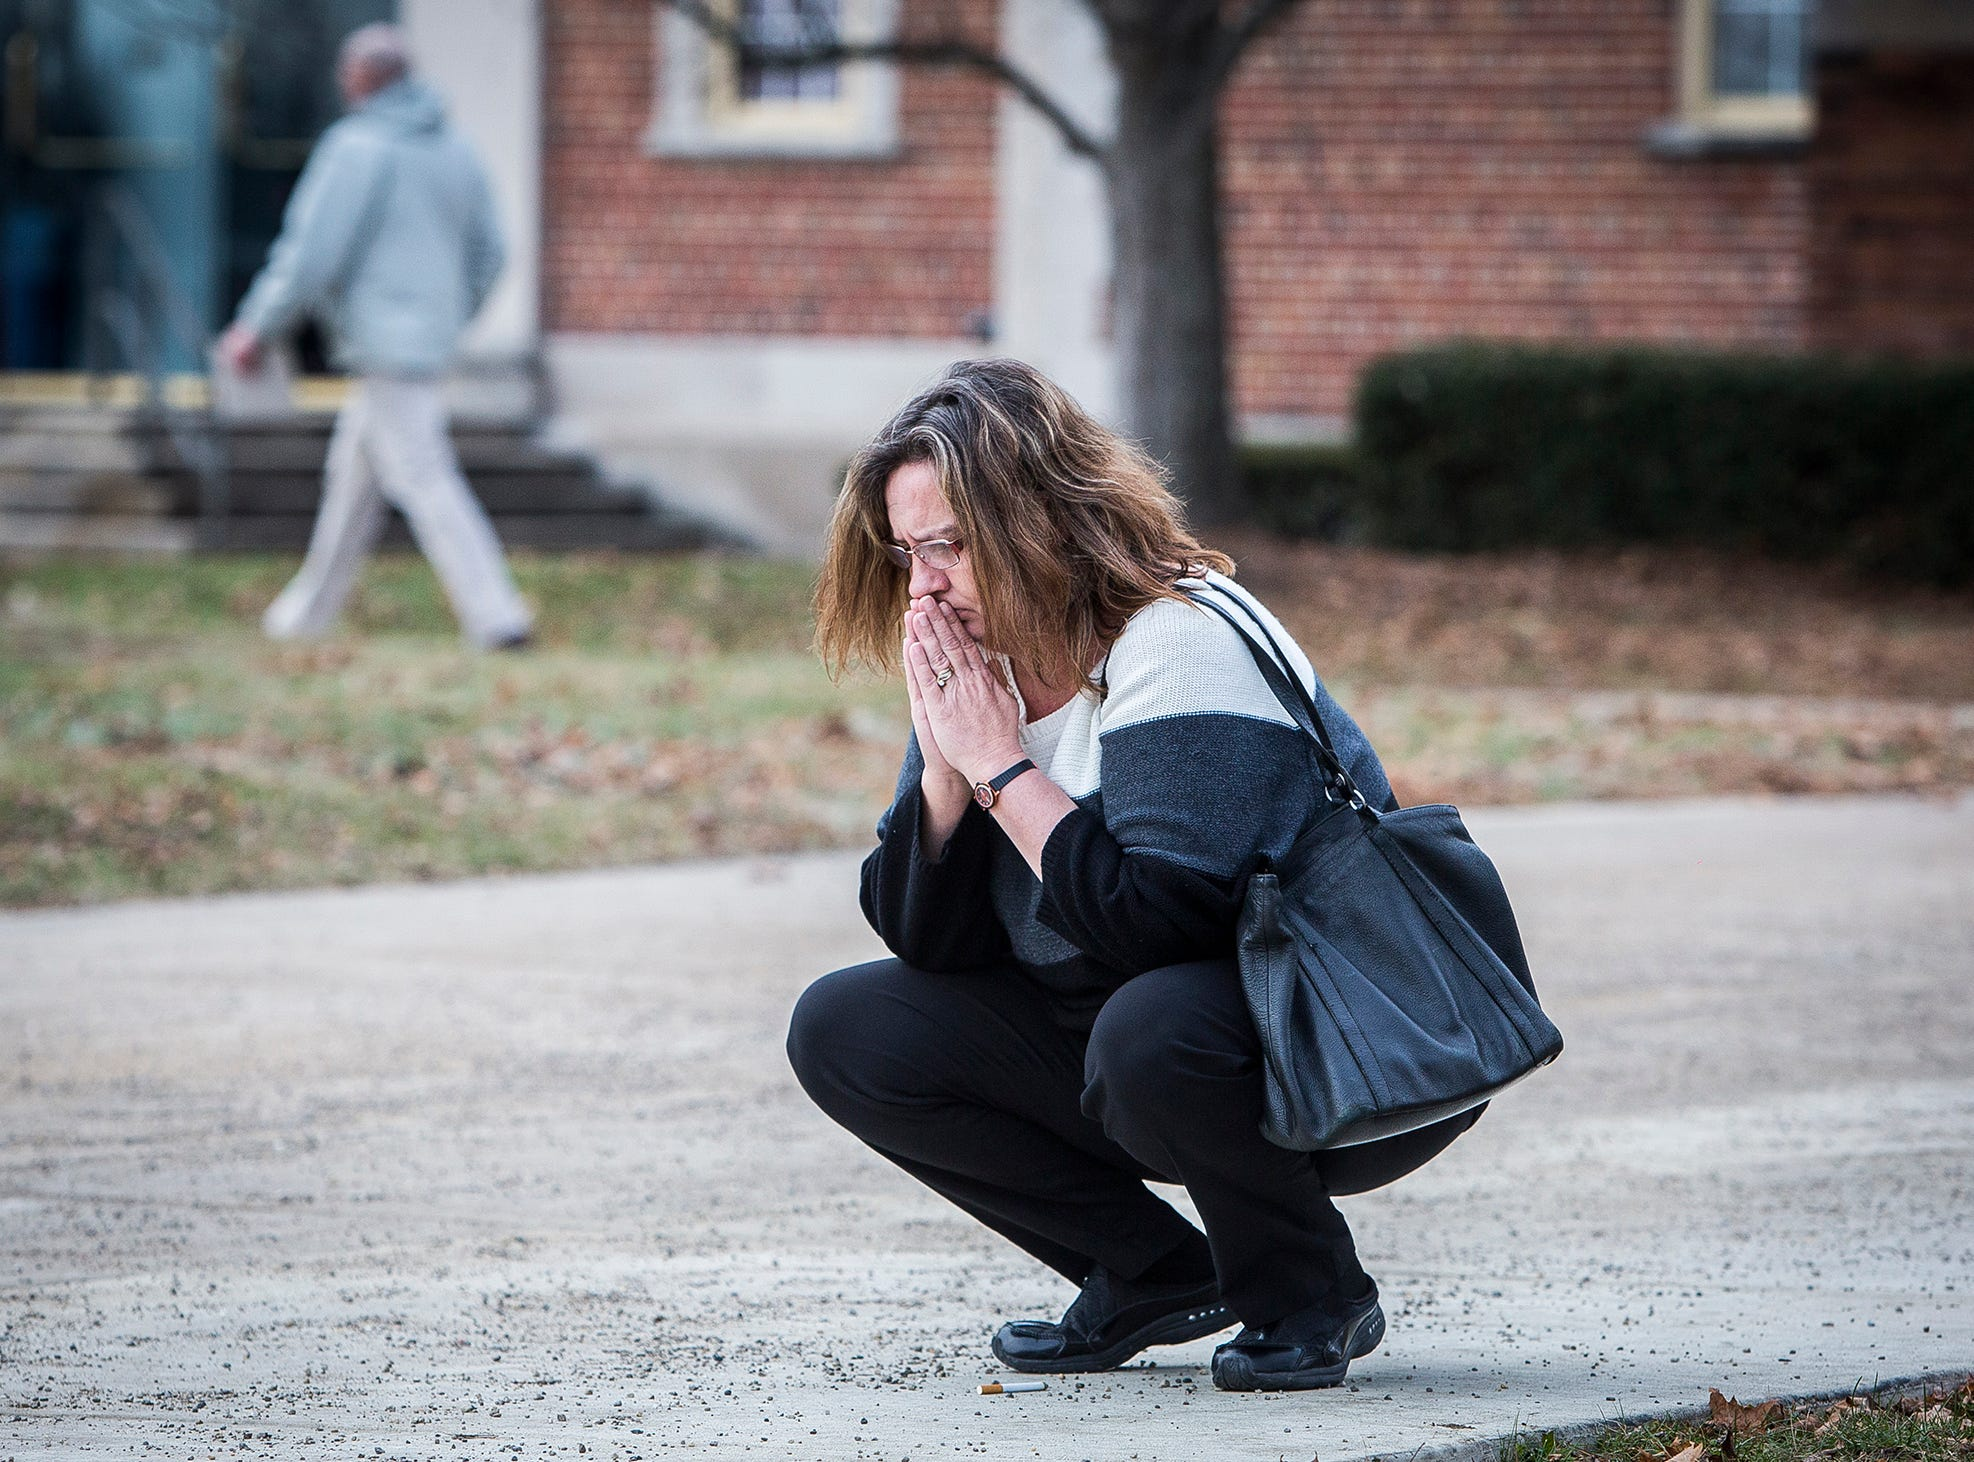 A parent prays outside of the Civic Hall Performing Arts Center before going inside to reunite with her child after a shooting occurred at Dennis Intermediate School in Richmond Thursday morning.